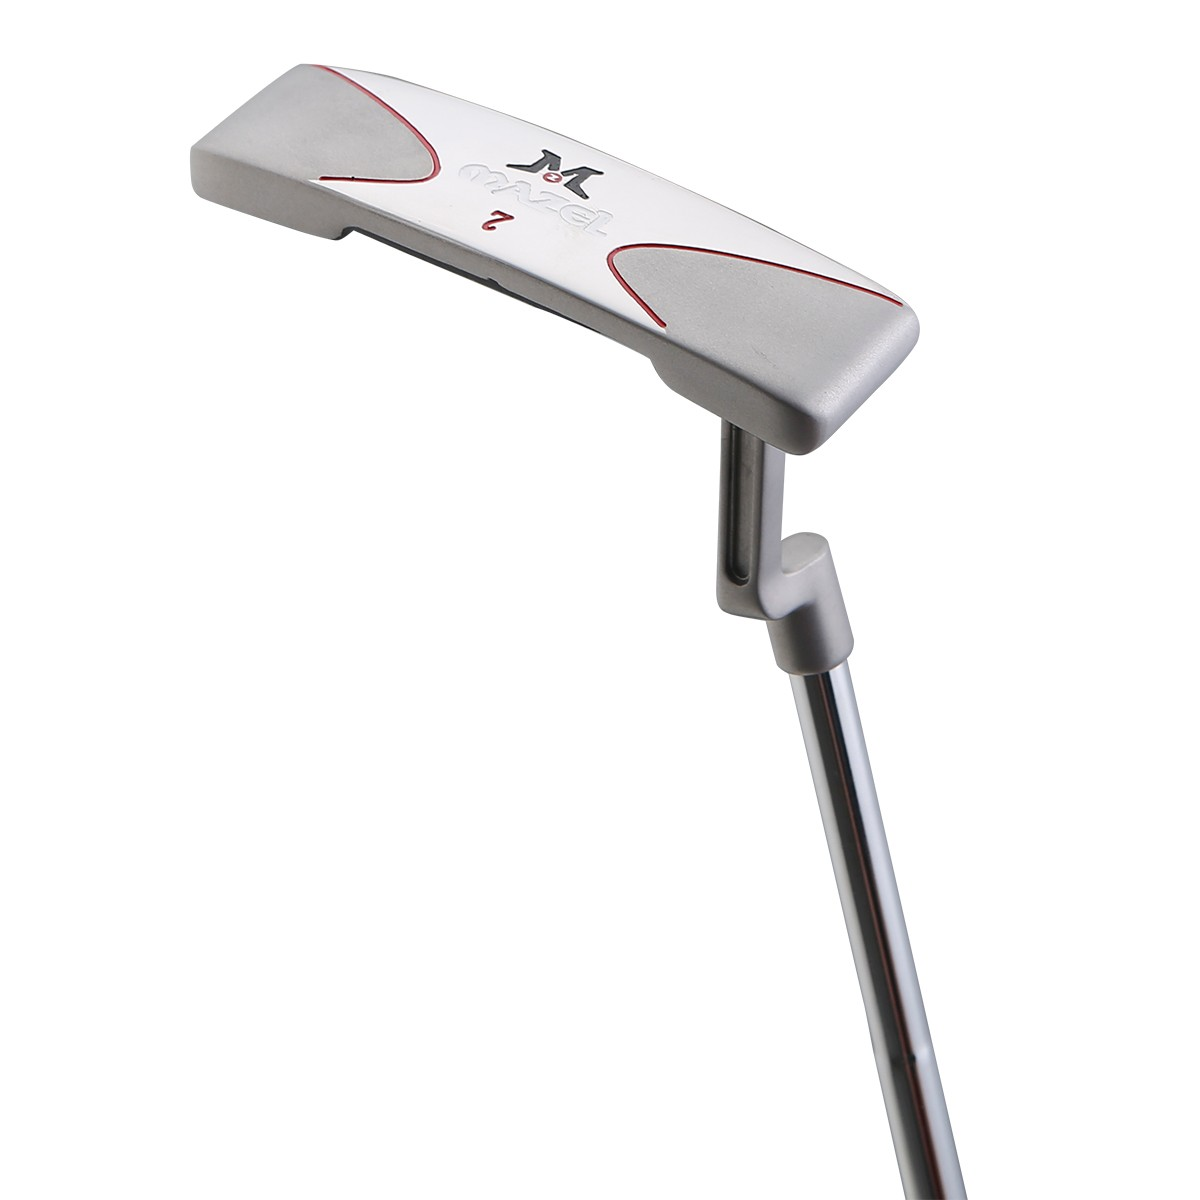 MAZEL Mens Golf Putters #7 | Golf Head Cover Included,Right Handed